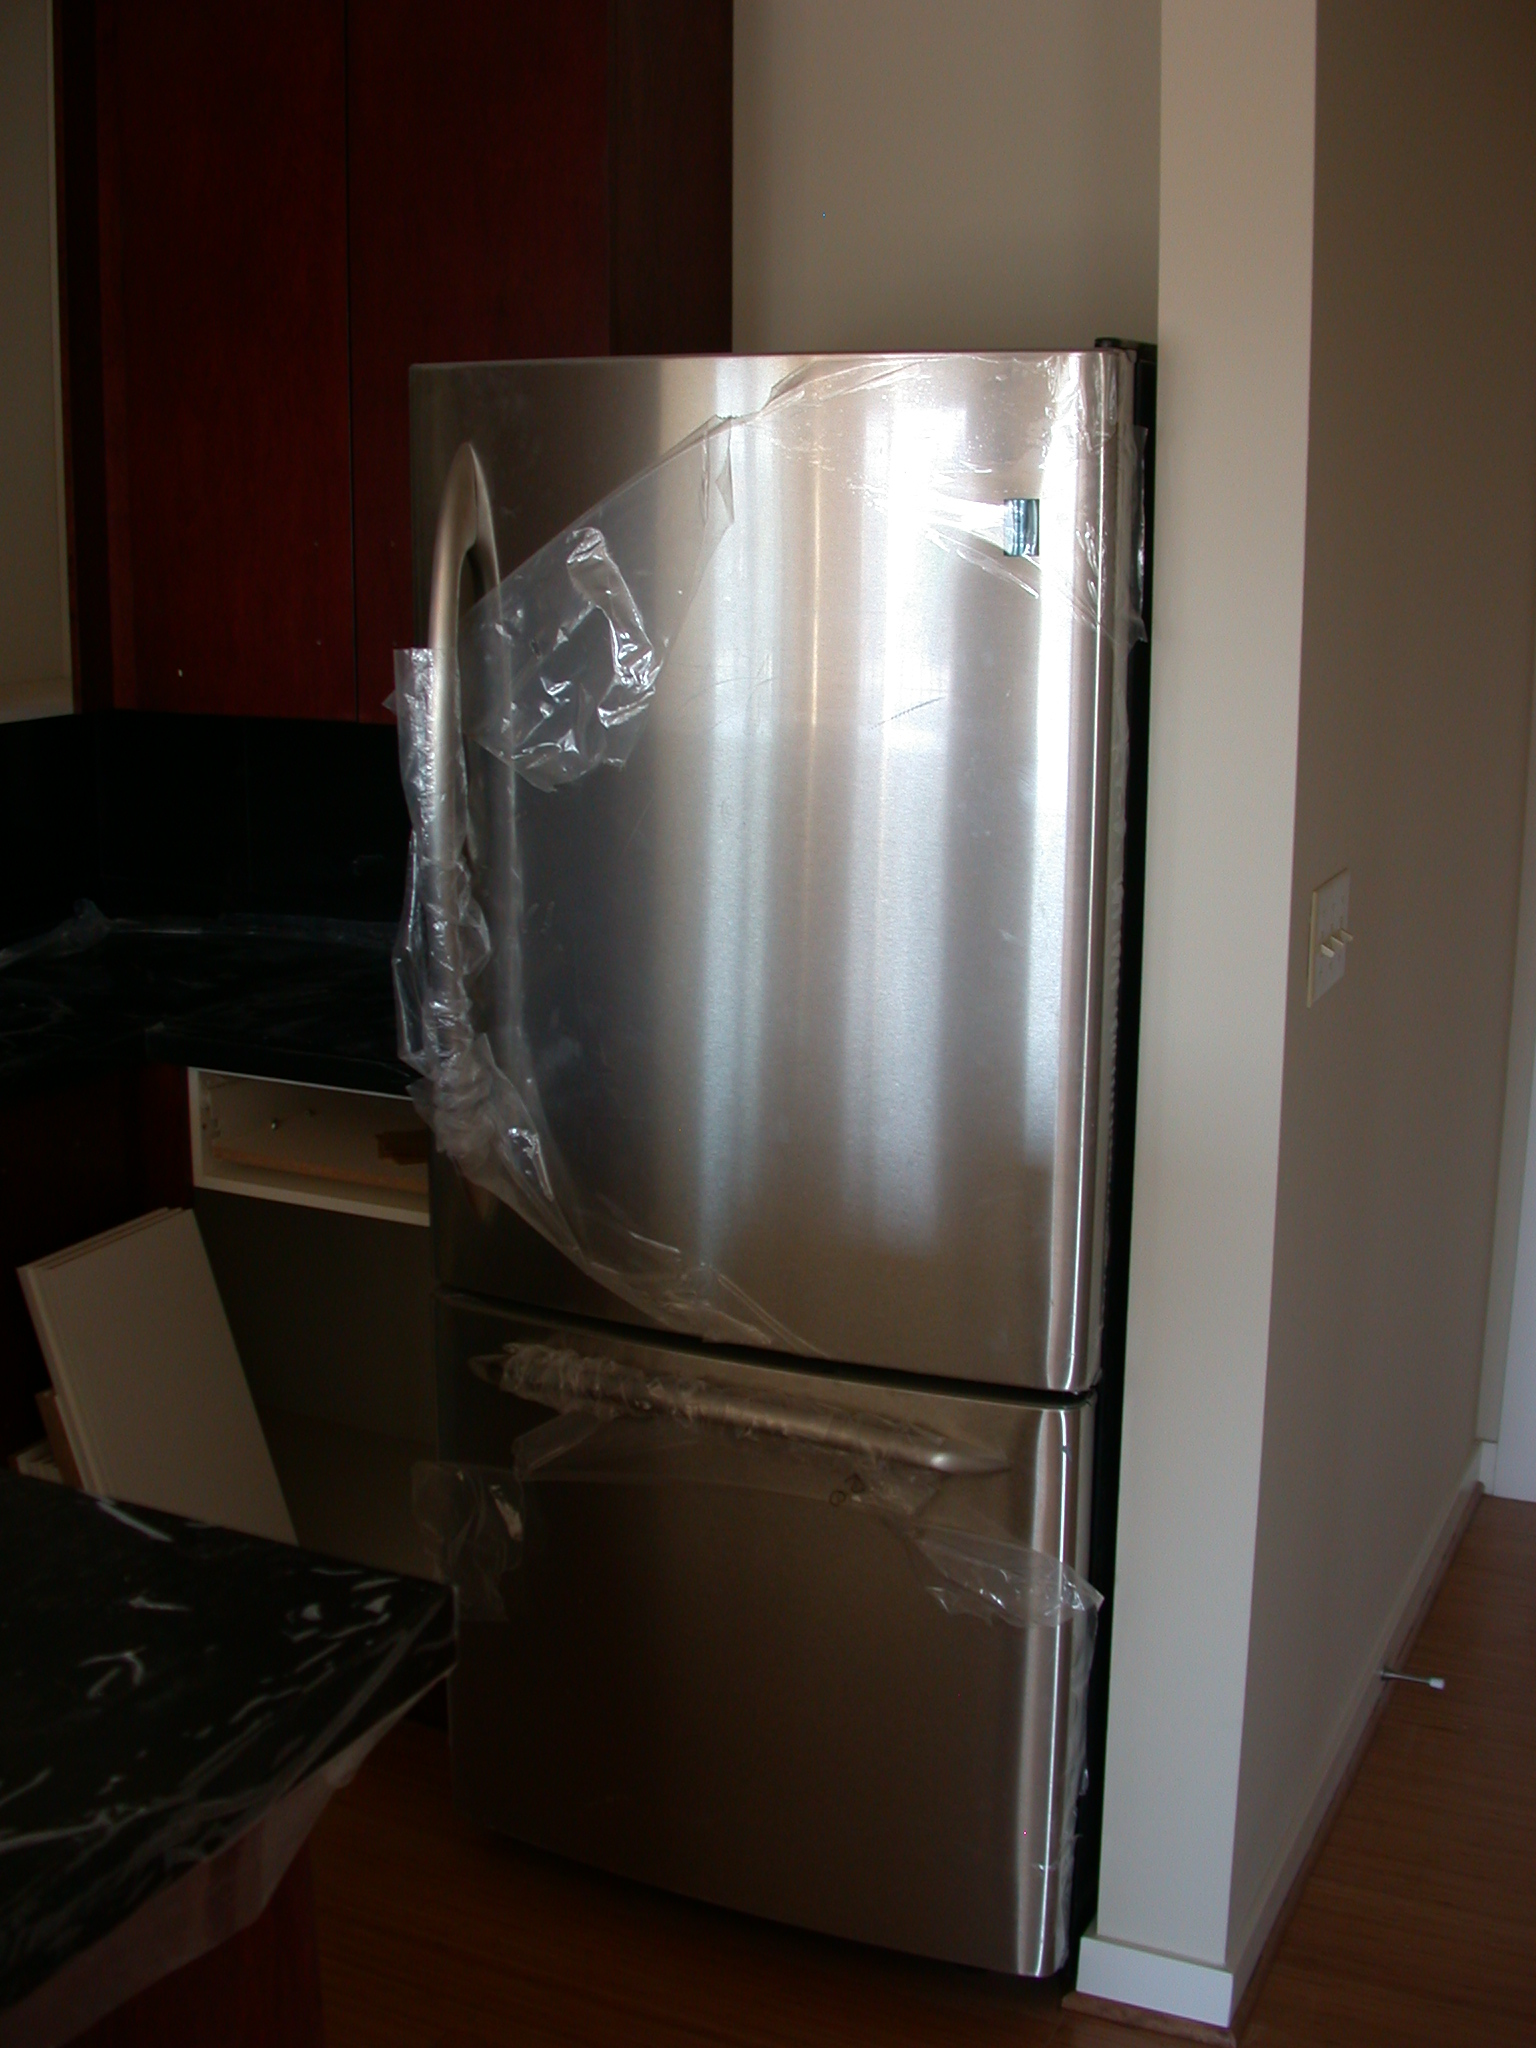 Refrigerator in Kitchen of Moms Condominium